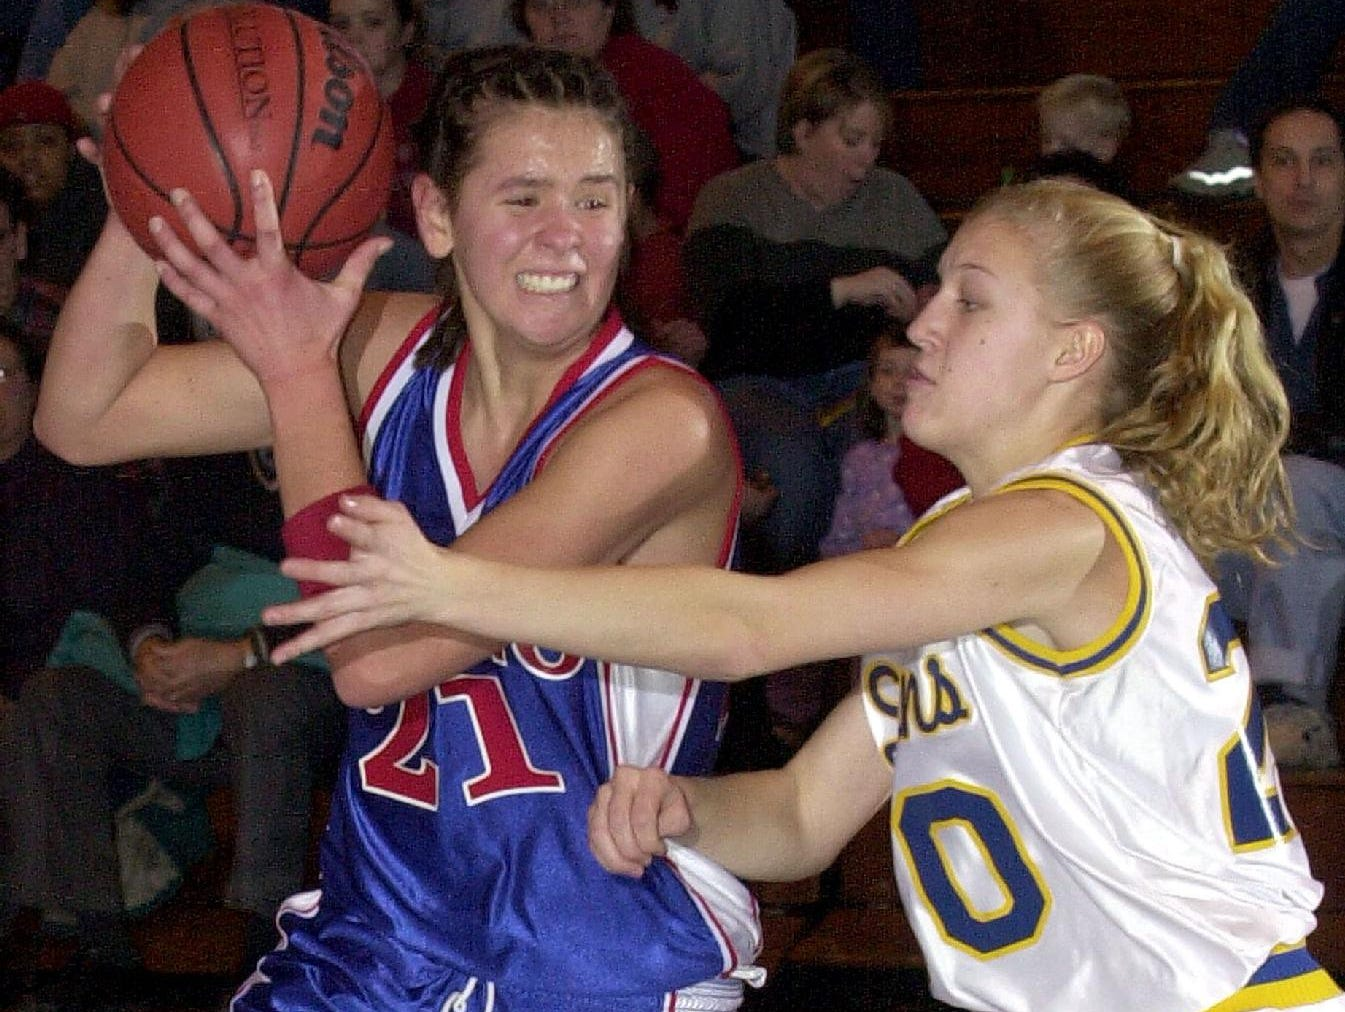 2001: Owego Free Academy's Kyle Dougherty, left, drives down the center of the key as she is guarded by Maine-Endwell's Brittany Pierce, during the second quarter of Sat afternoon's game.